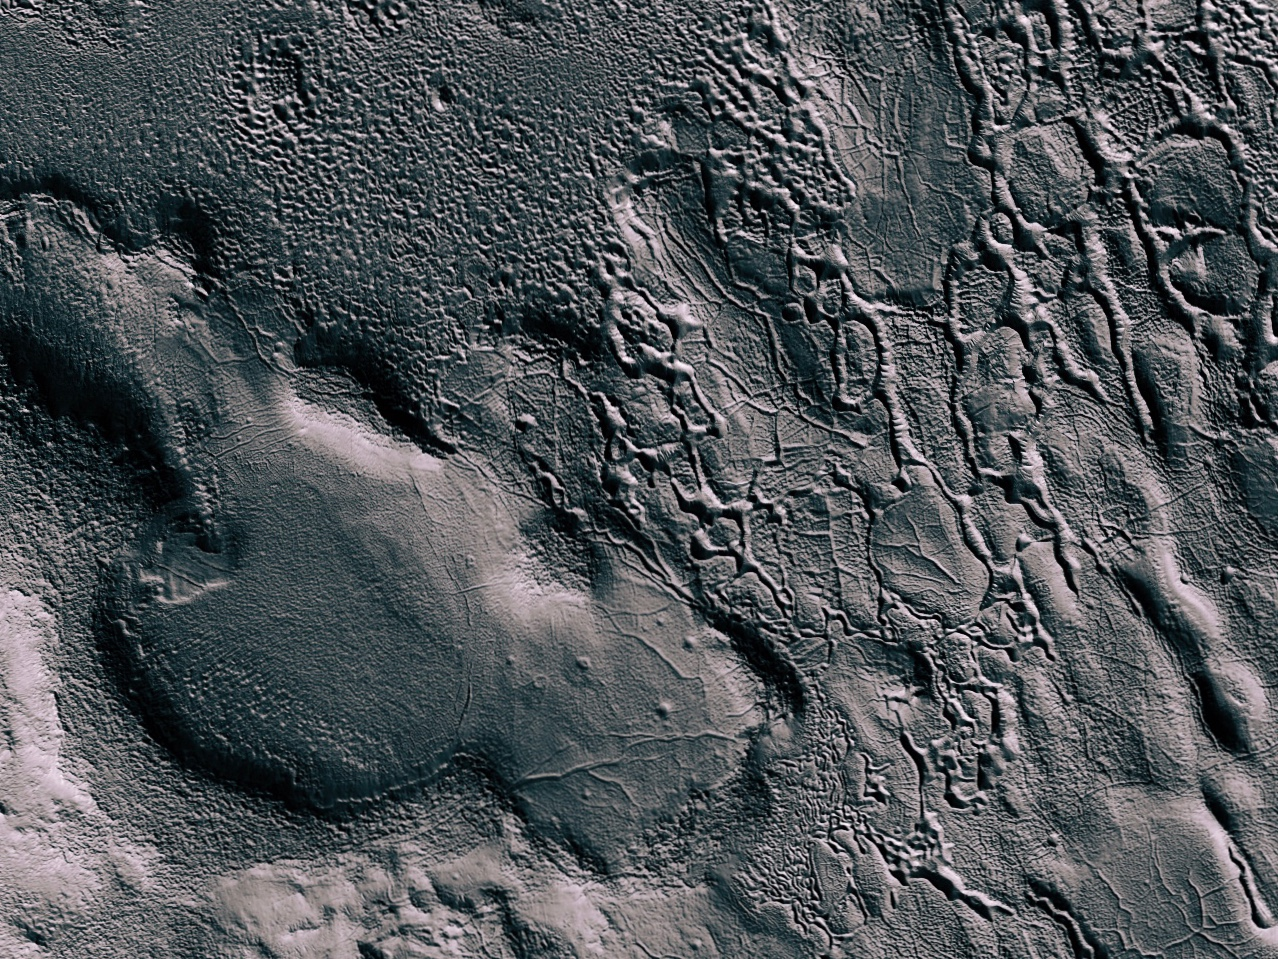 Erosion in North Arabia Terra